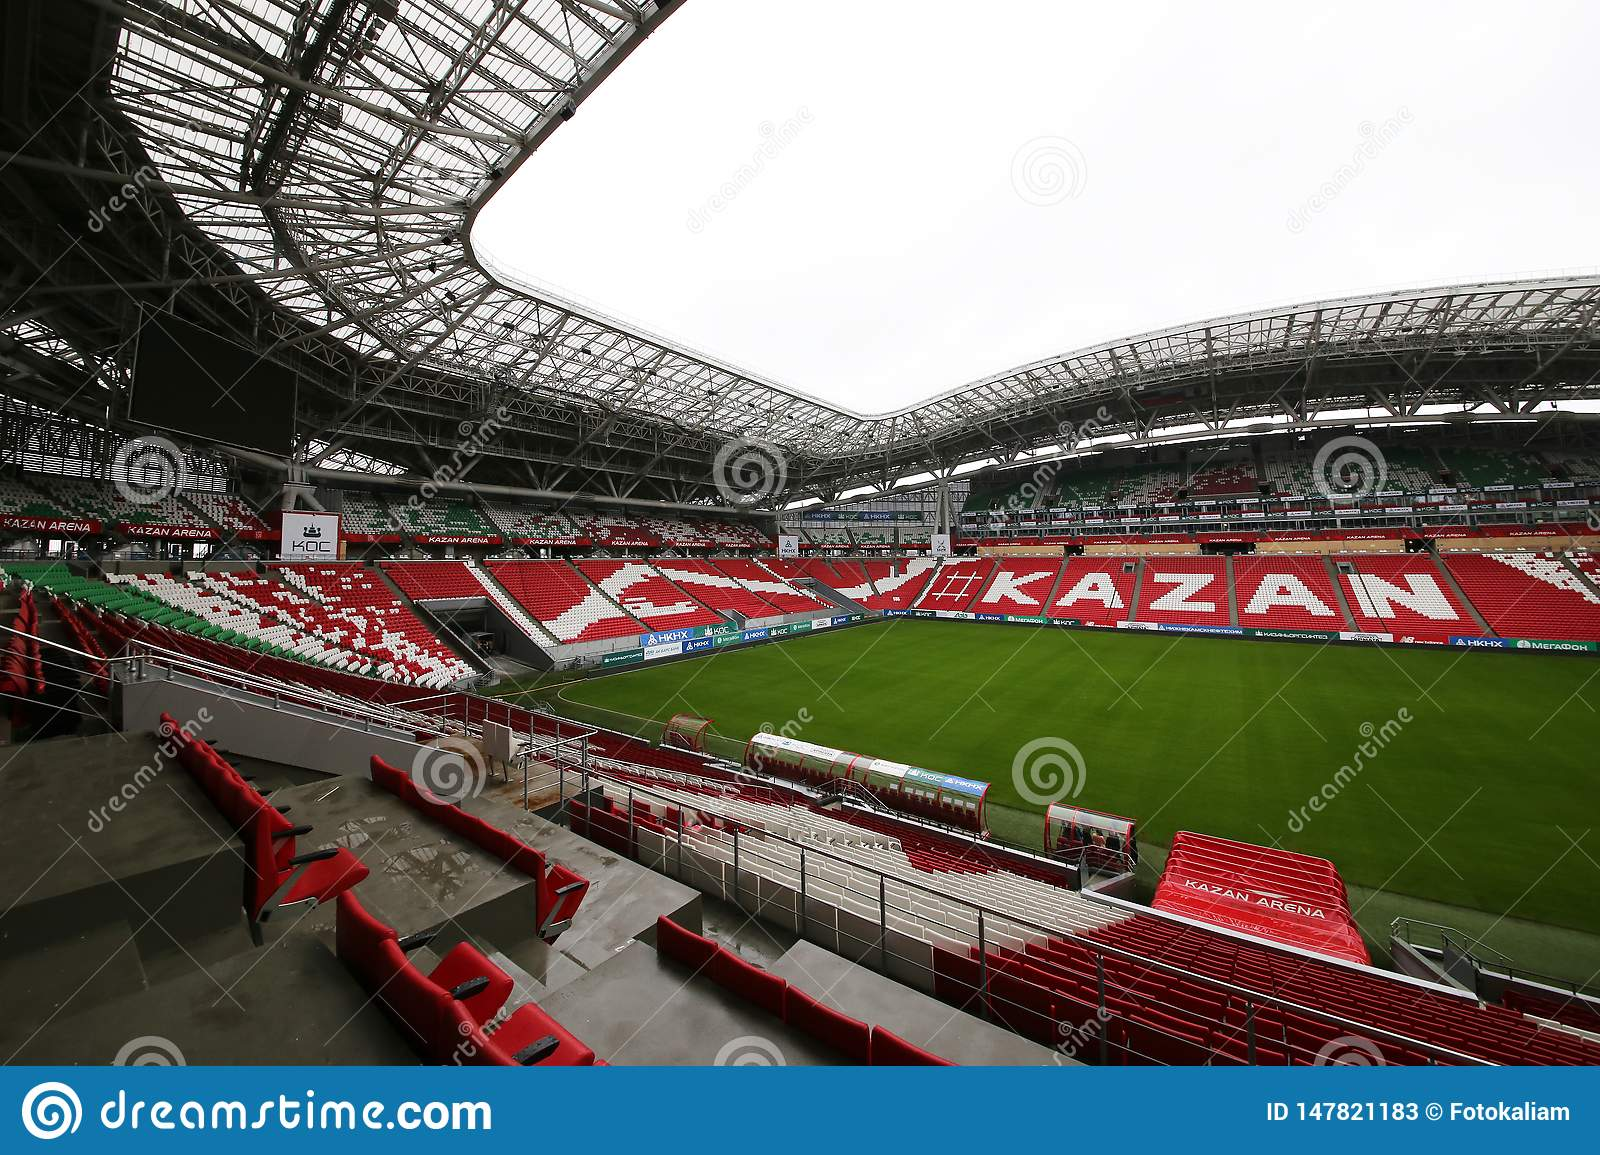 Stadium Kazan Arena, Which Will Be Held Football Matches Of The 2018 on